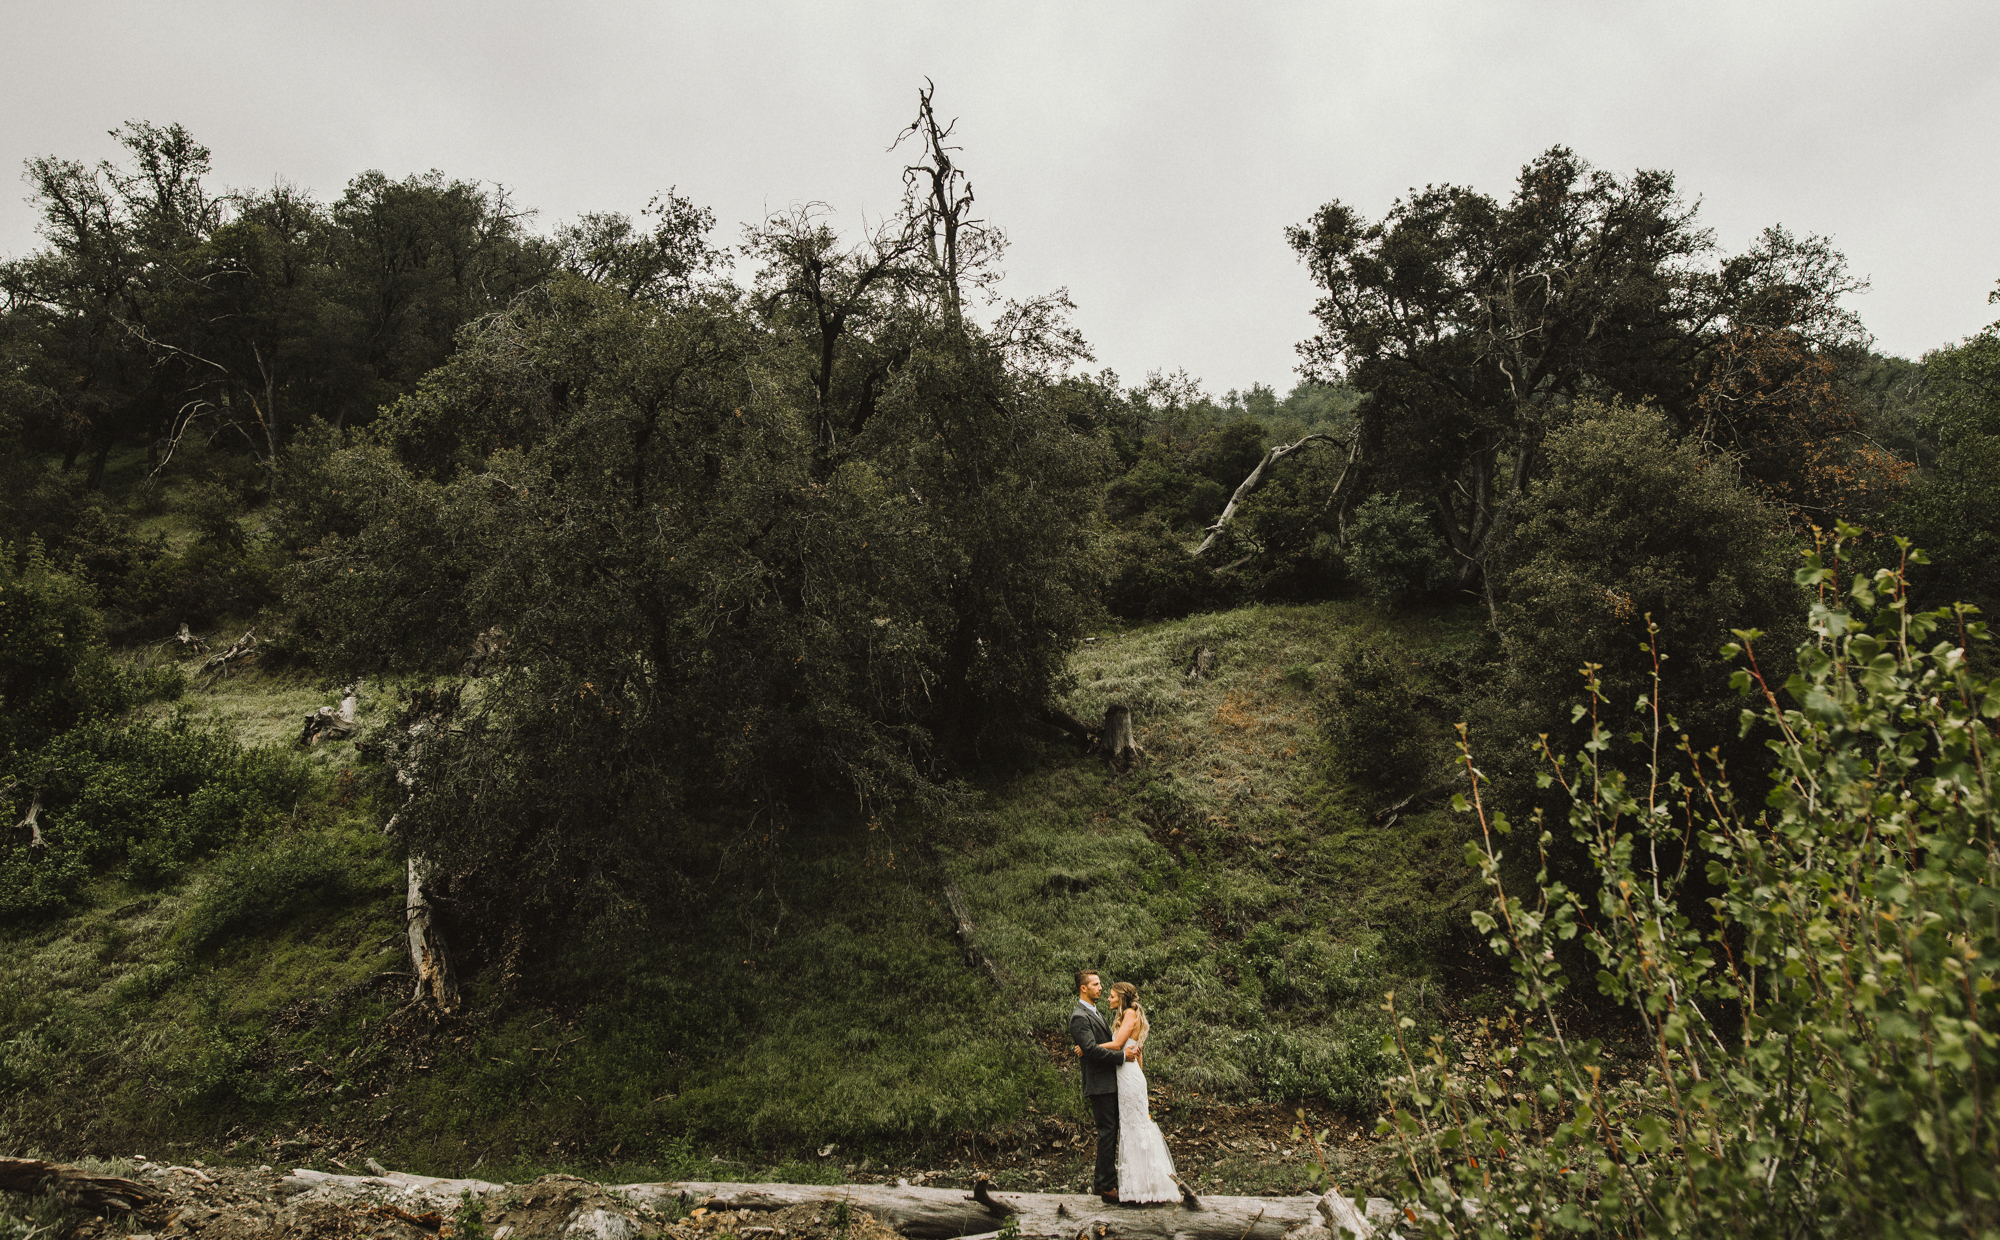 Isaiah & Taylor Photography - Los Angeles - Destination Wedding Photographers - Oak Glen Wilshire Ranch Foggy Forest Wedding-45.jpg